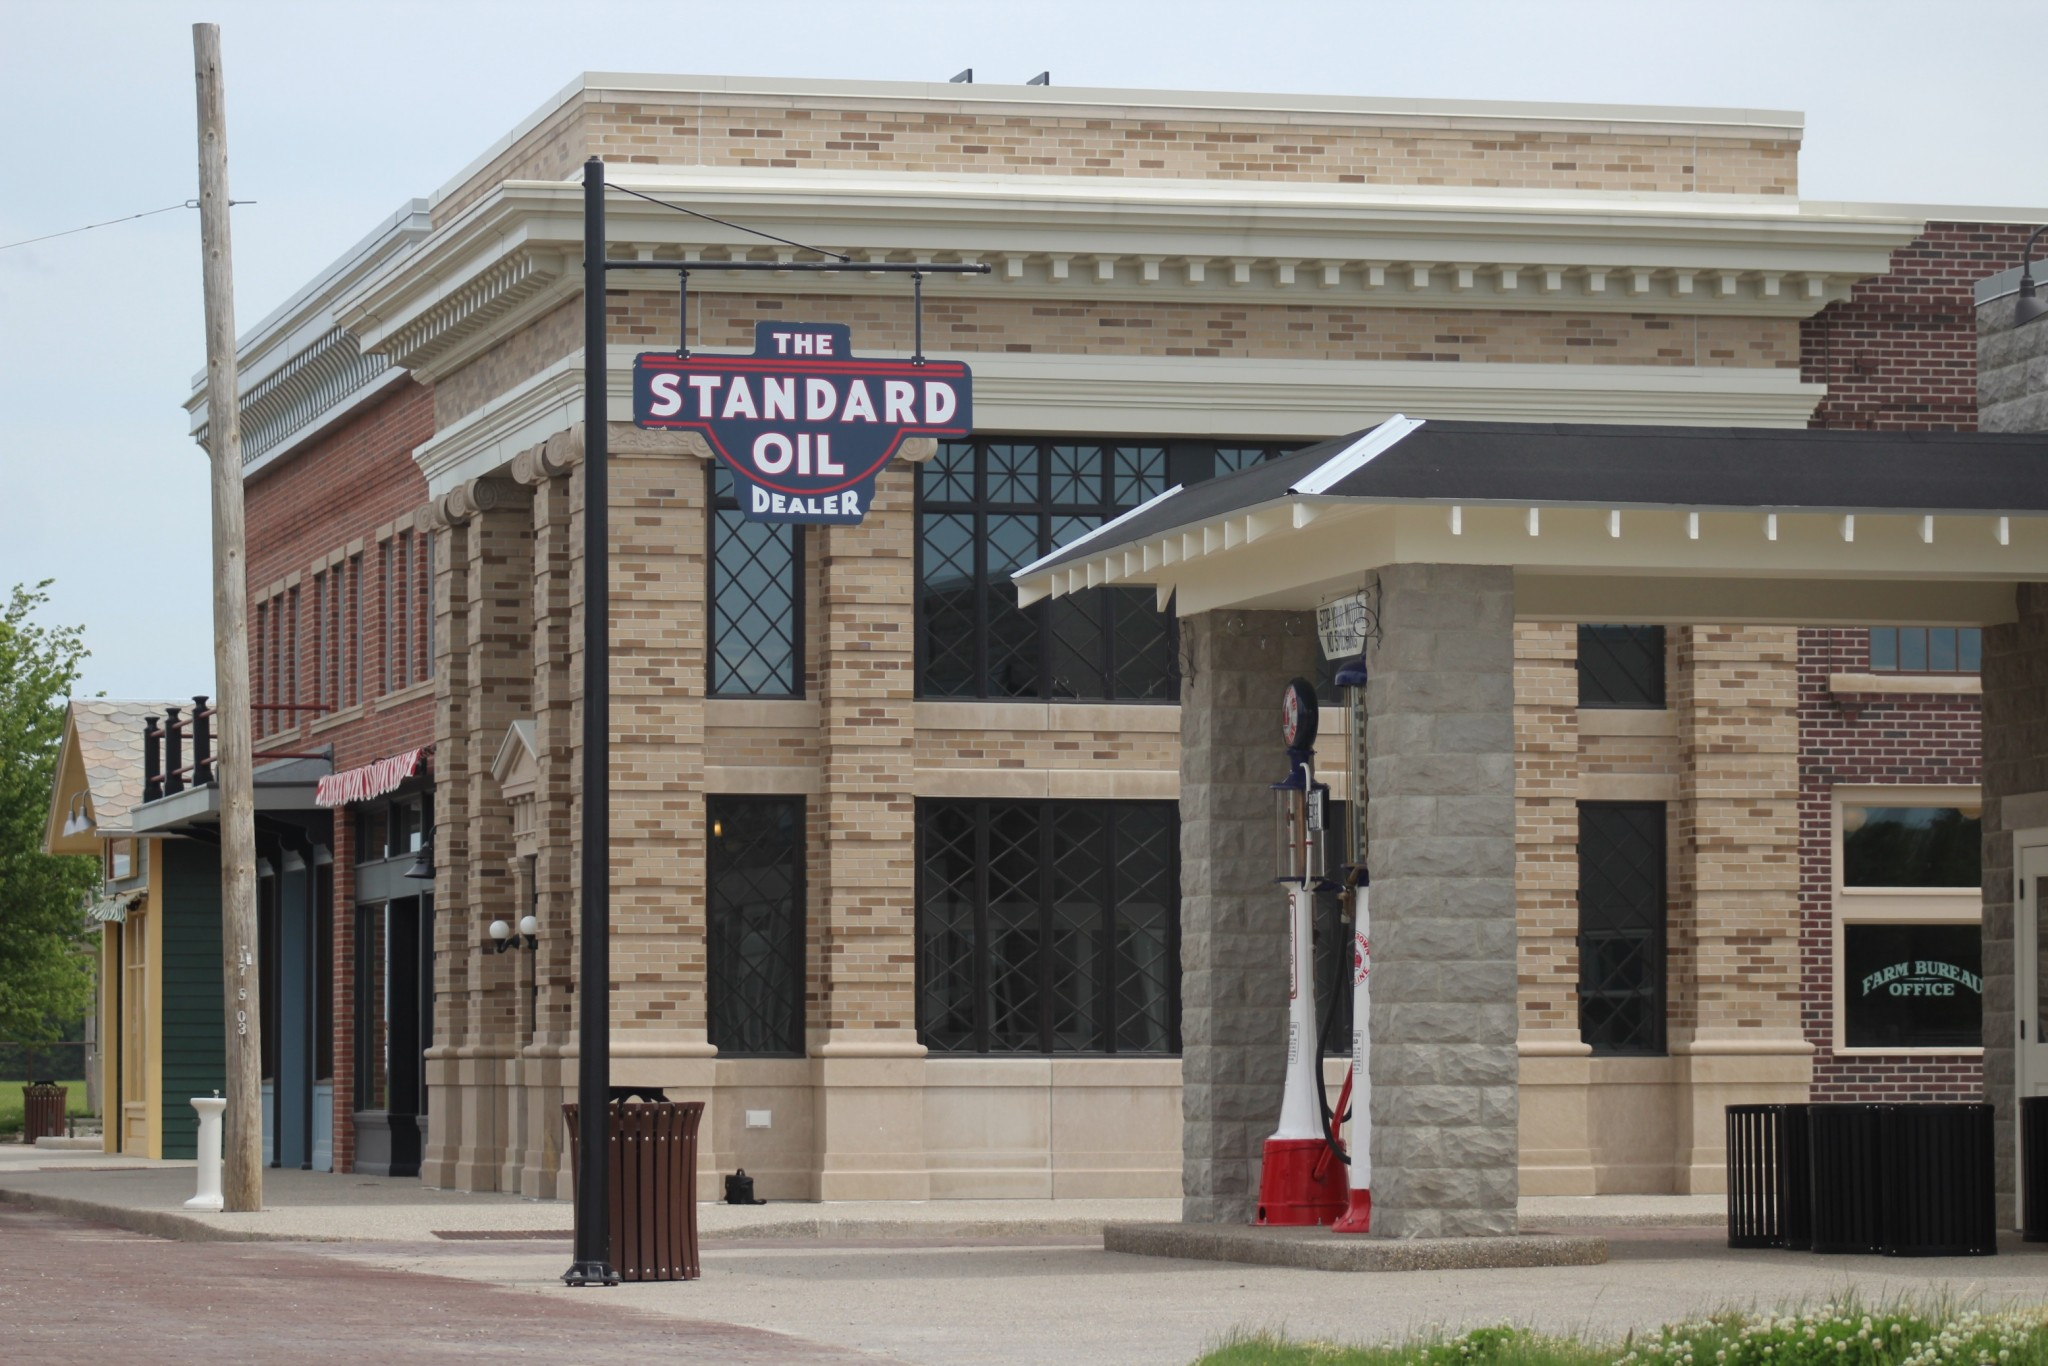 When Sauder Village opens June 24, guests will be among the first to experience some of the new buildings on the 1920s Main Street. (Submitted photo)